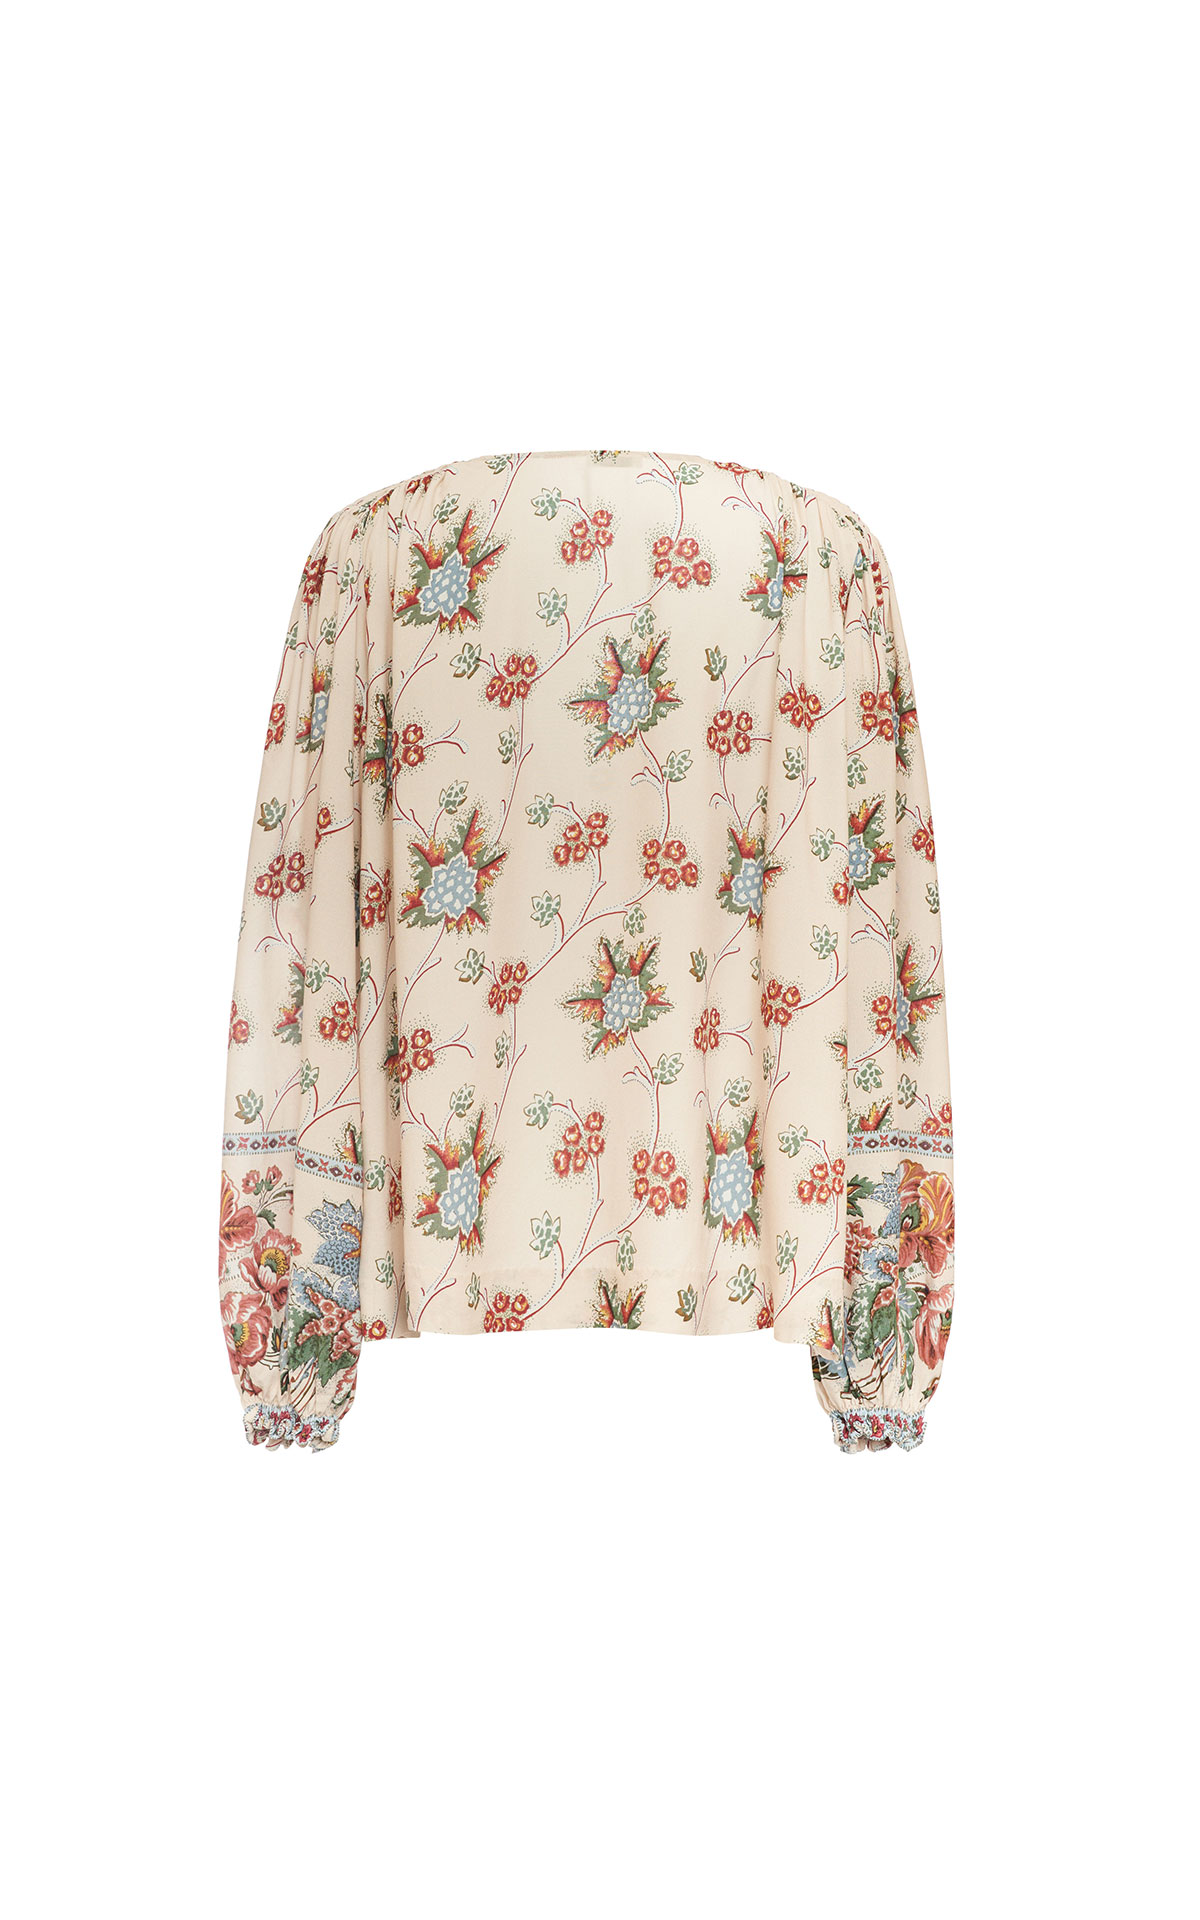 Barefoot Chic Vilshenko Amy blouse from Bicester Village